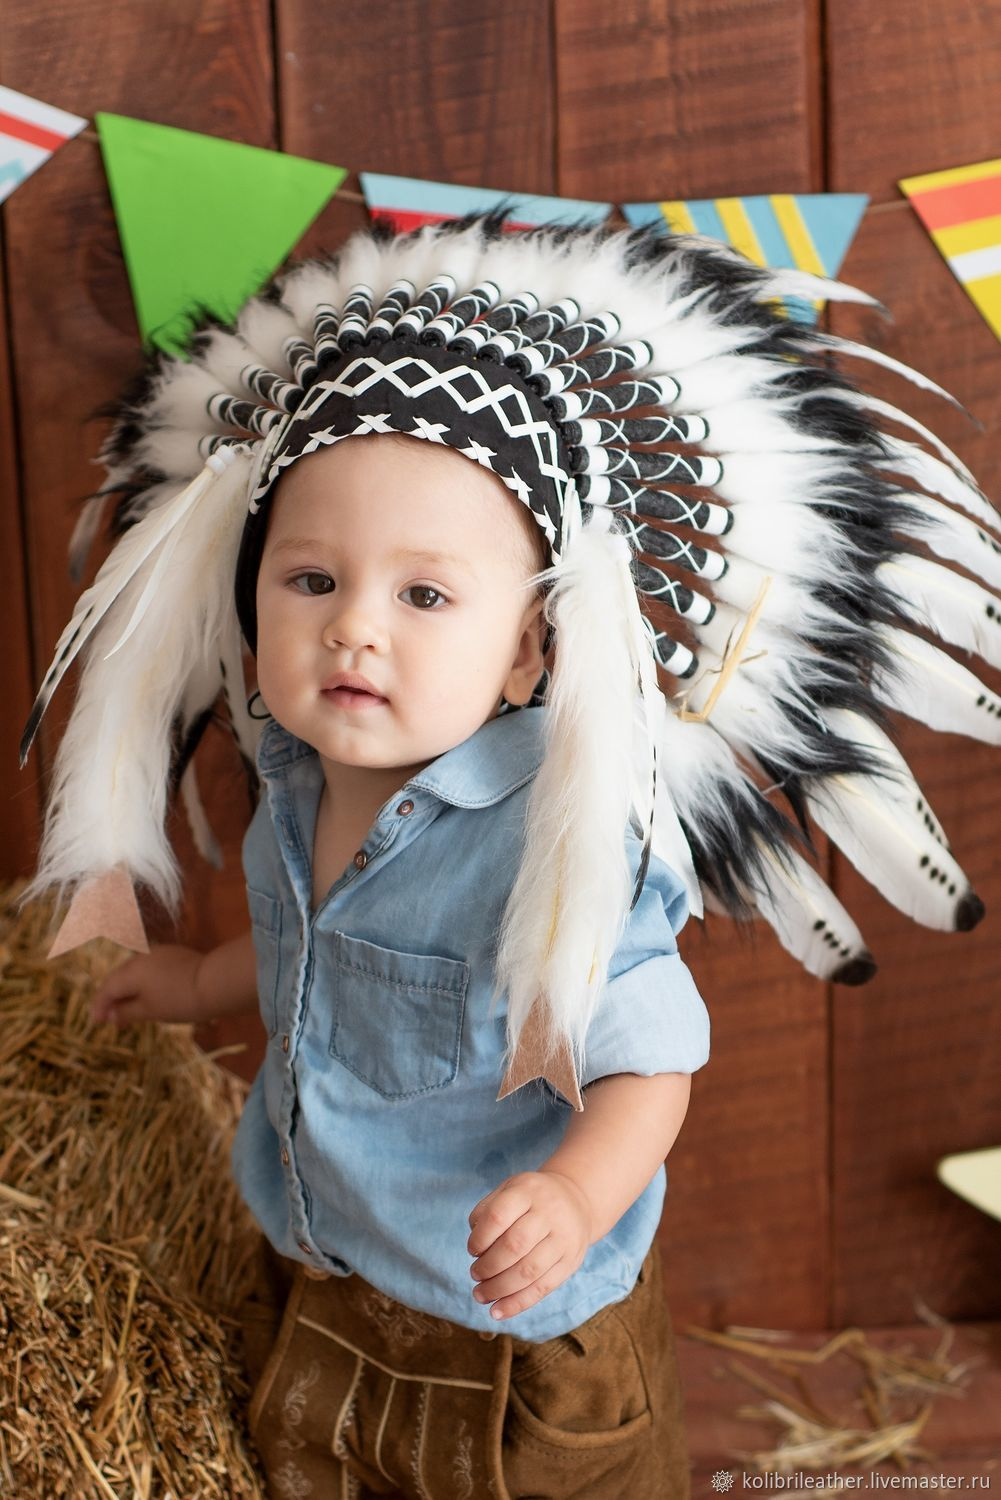 9419a5ccee7 Indian children s Christmas costume · Carnival Costumes handmade. Indian children s  hat made of feathers. Indian children s Christmas costume.